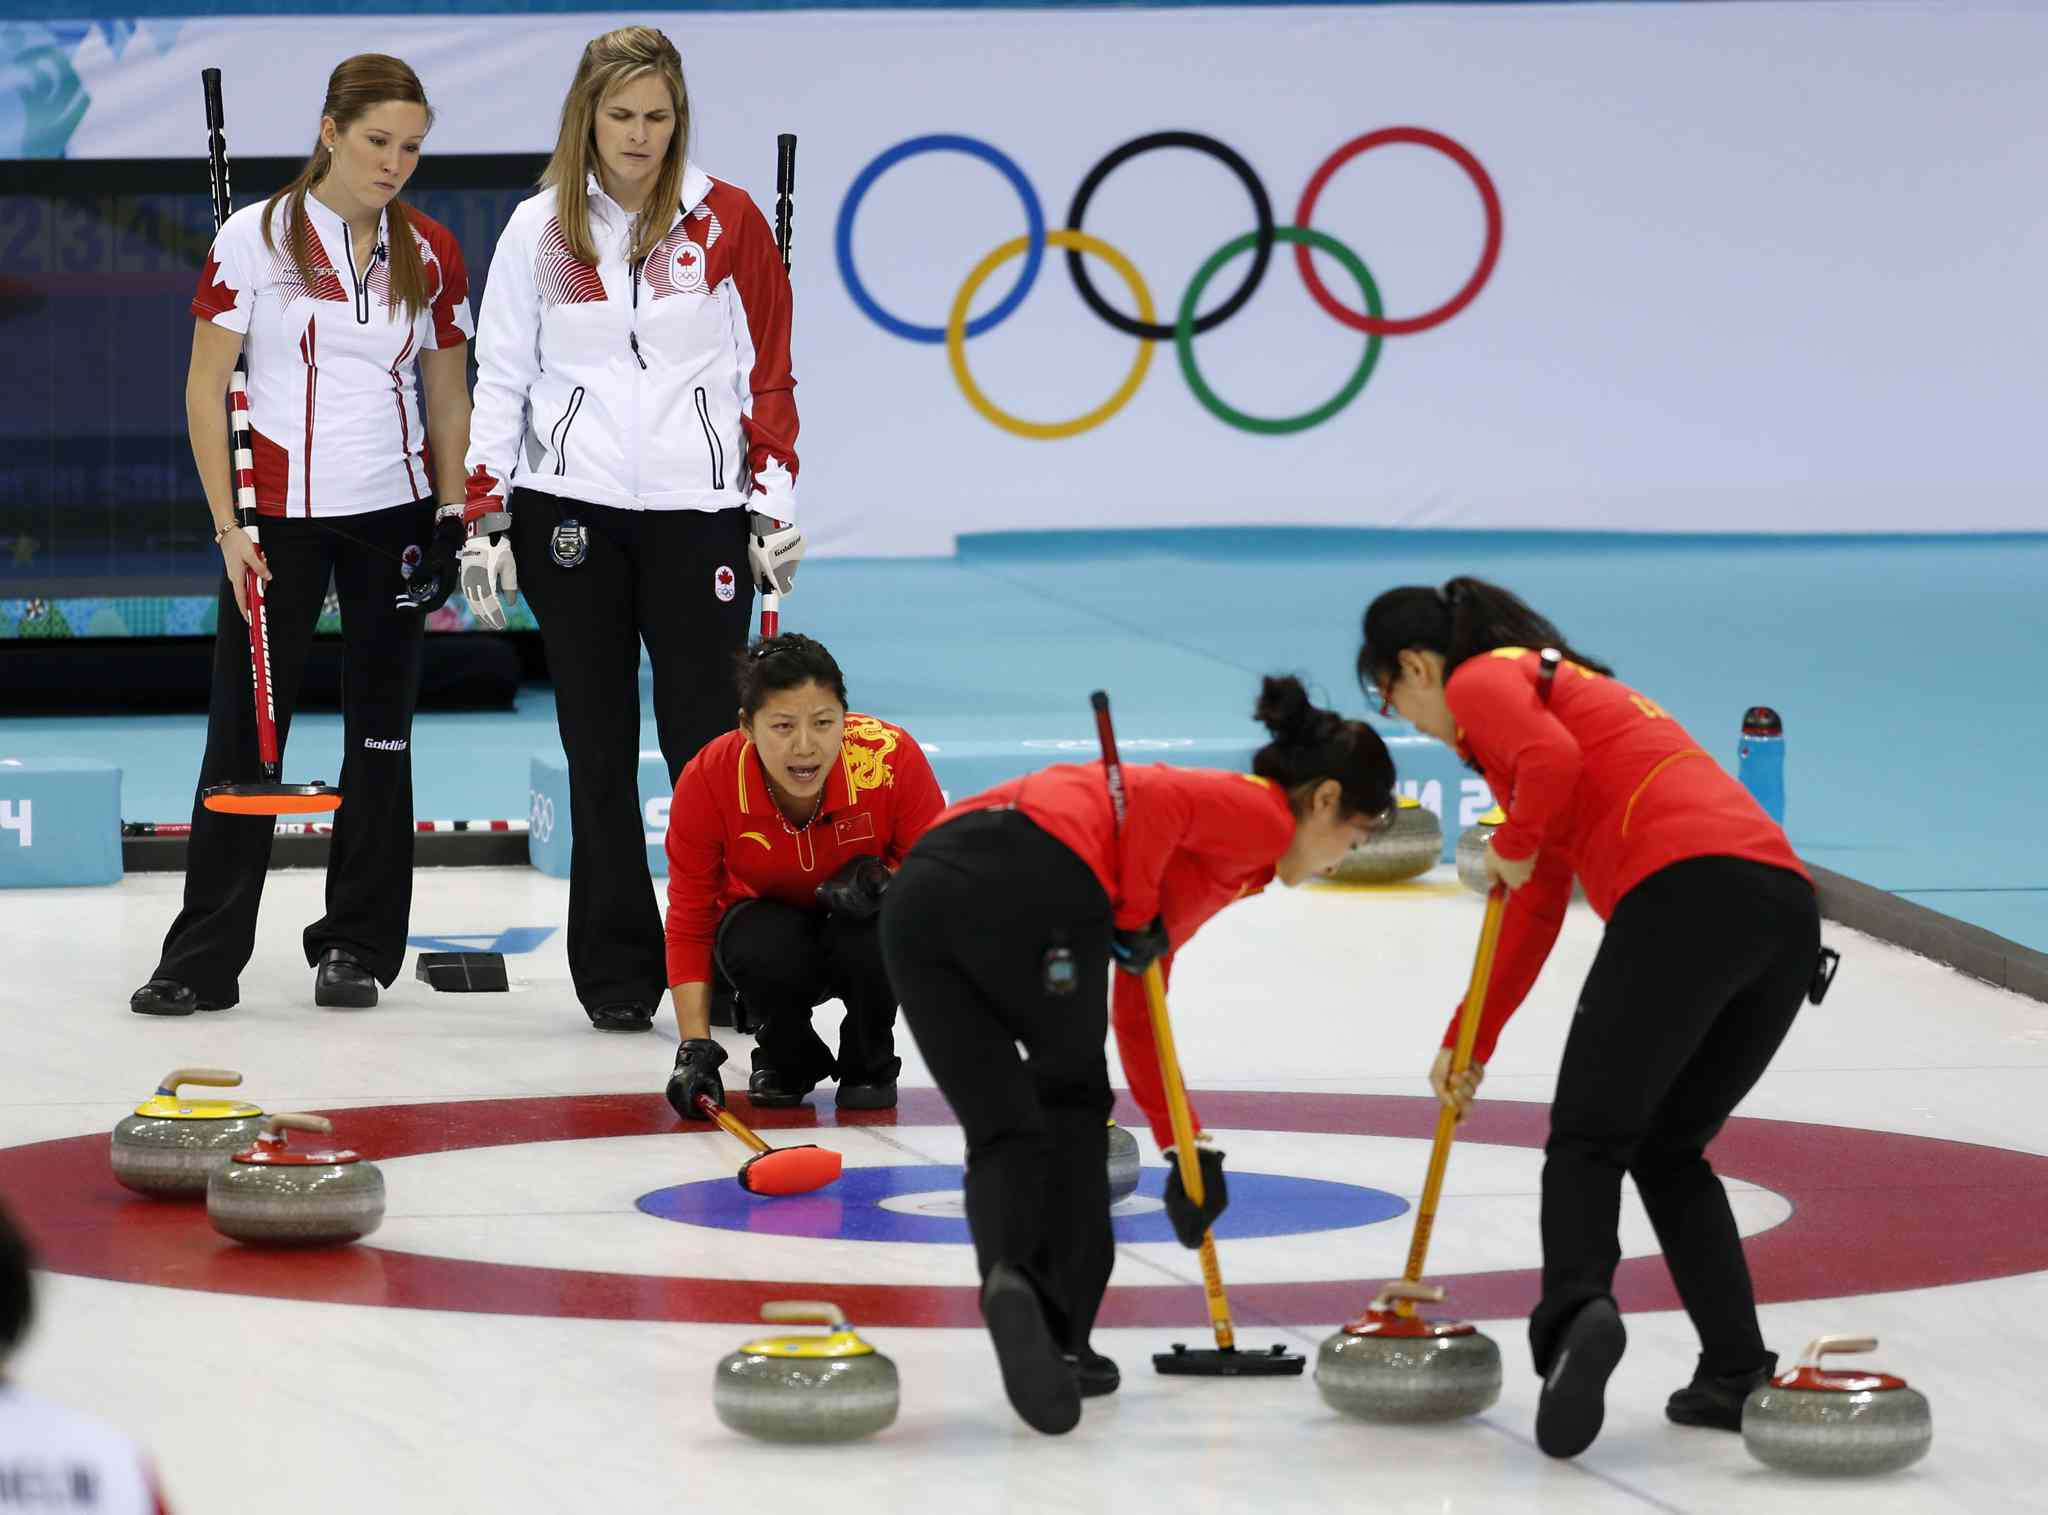 China's Liu Yin shouts instructions to her sweepers as Canada's Kaitlyn Lawes (left) and skip Jennifer Jones look on.